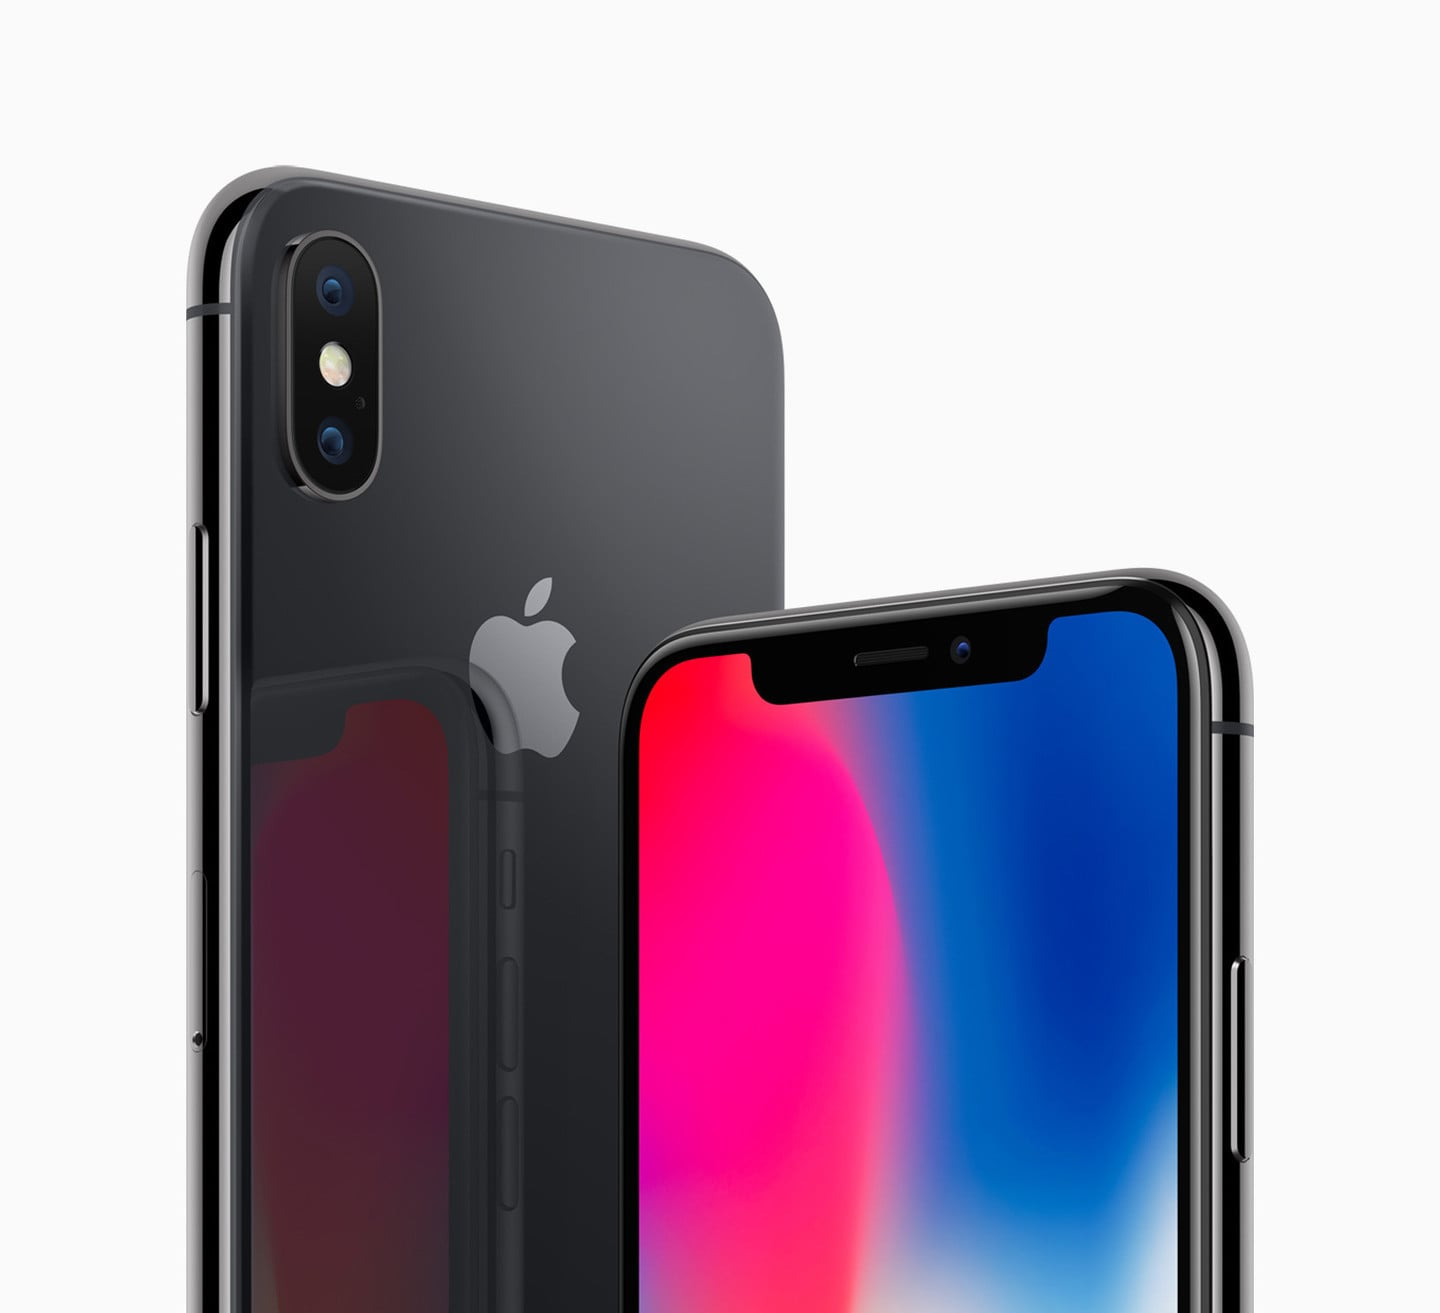 get the iPhone x